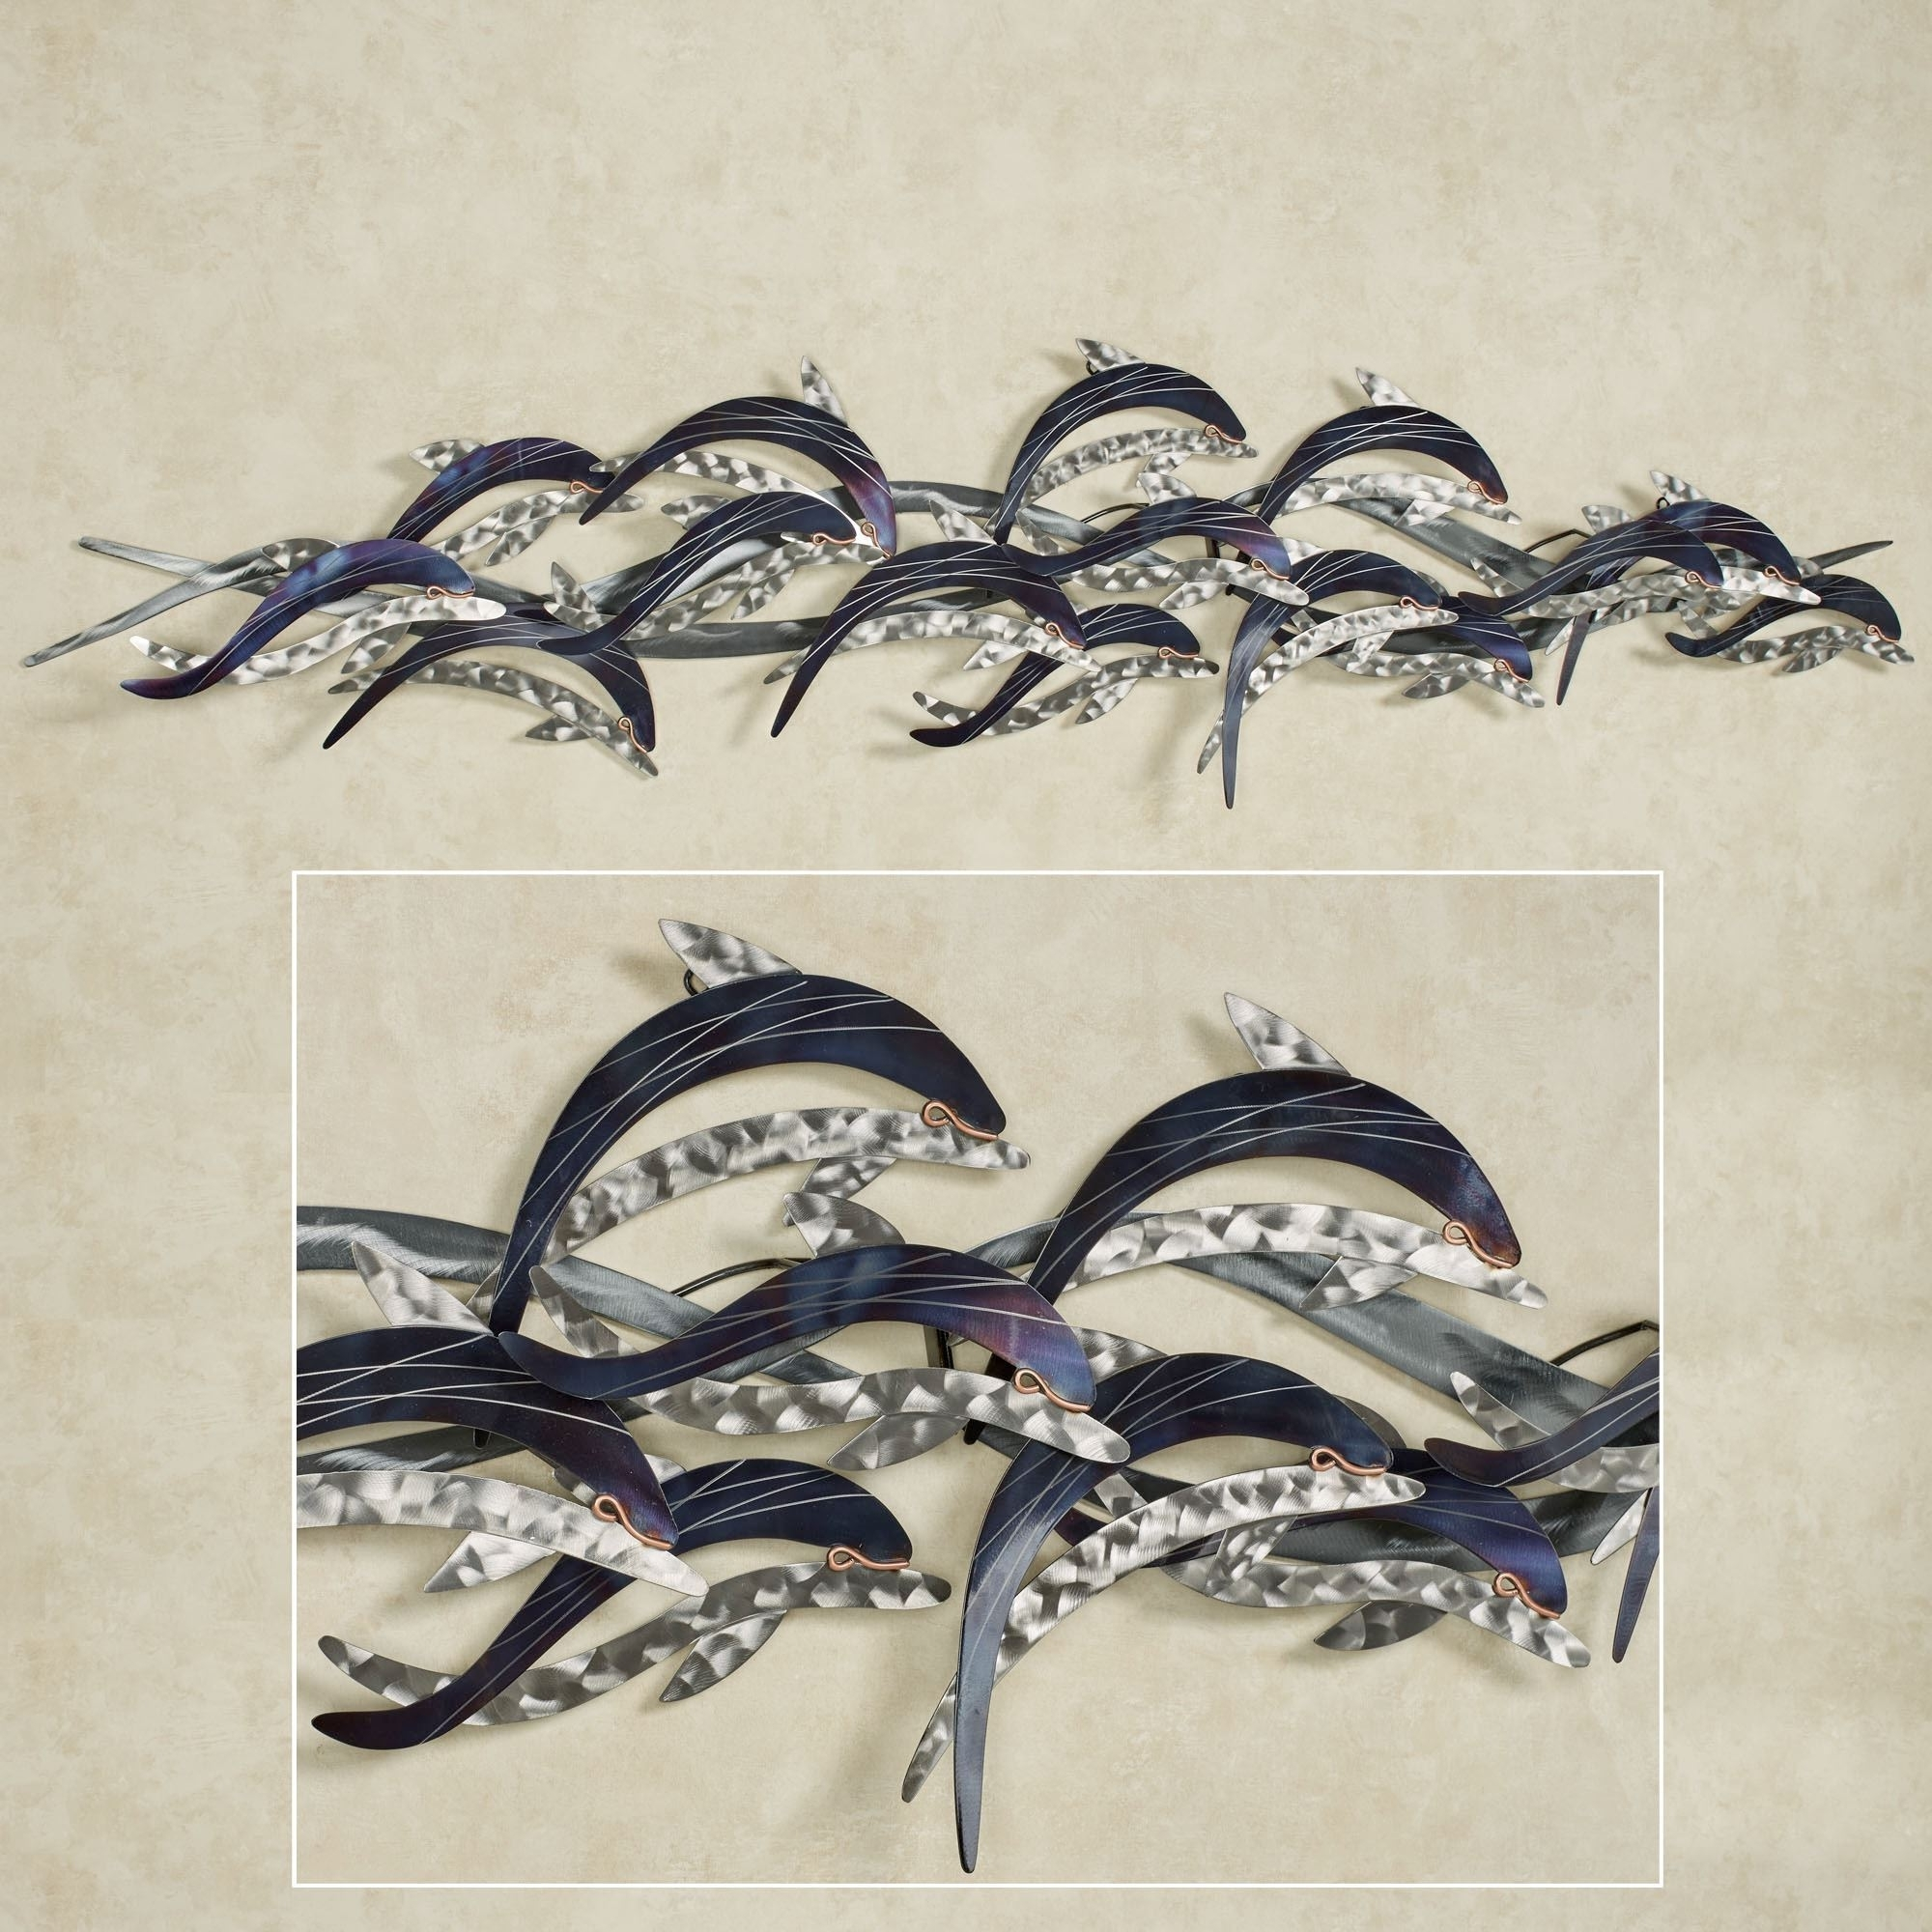 Dolphin Metal Wall Art With Regard To Best And Newest In The Waves Dolphin Metal Wall Sculpture (View 7 of 15)